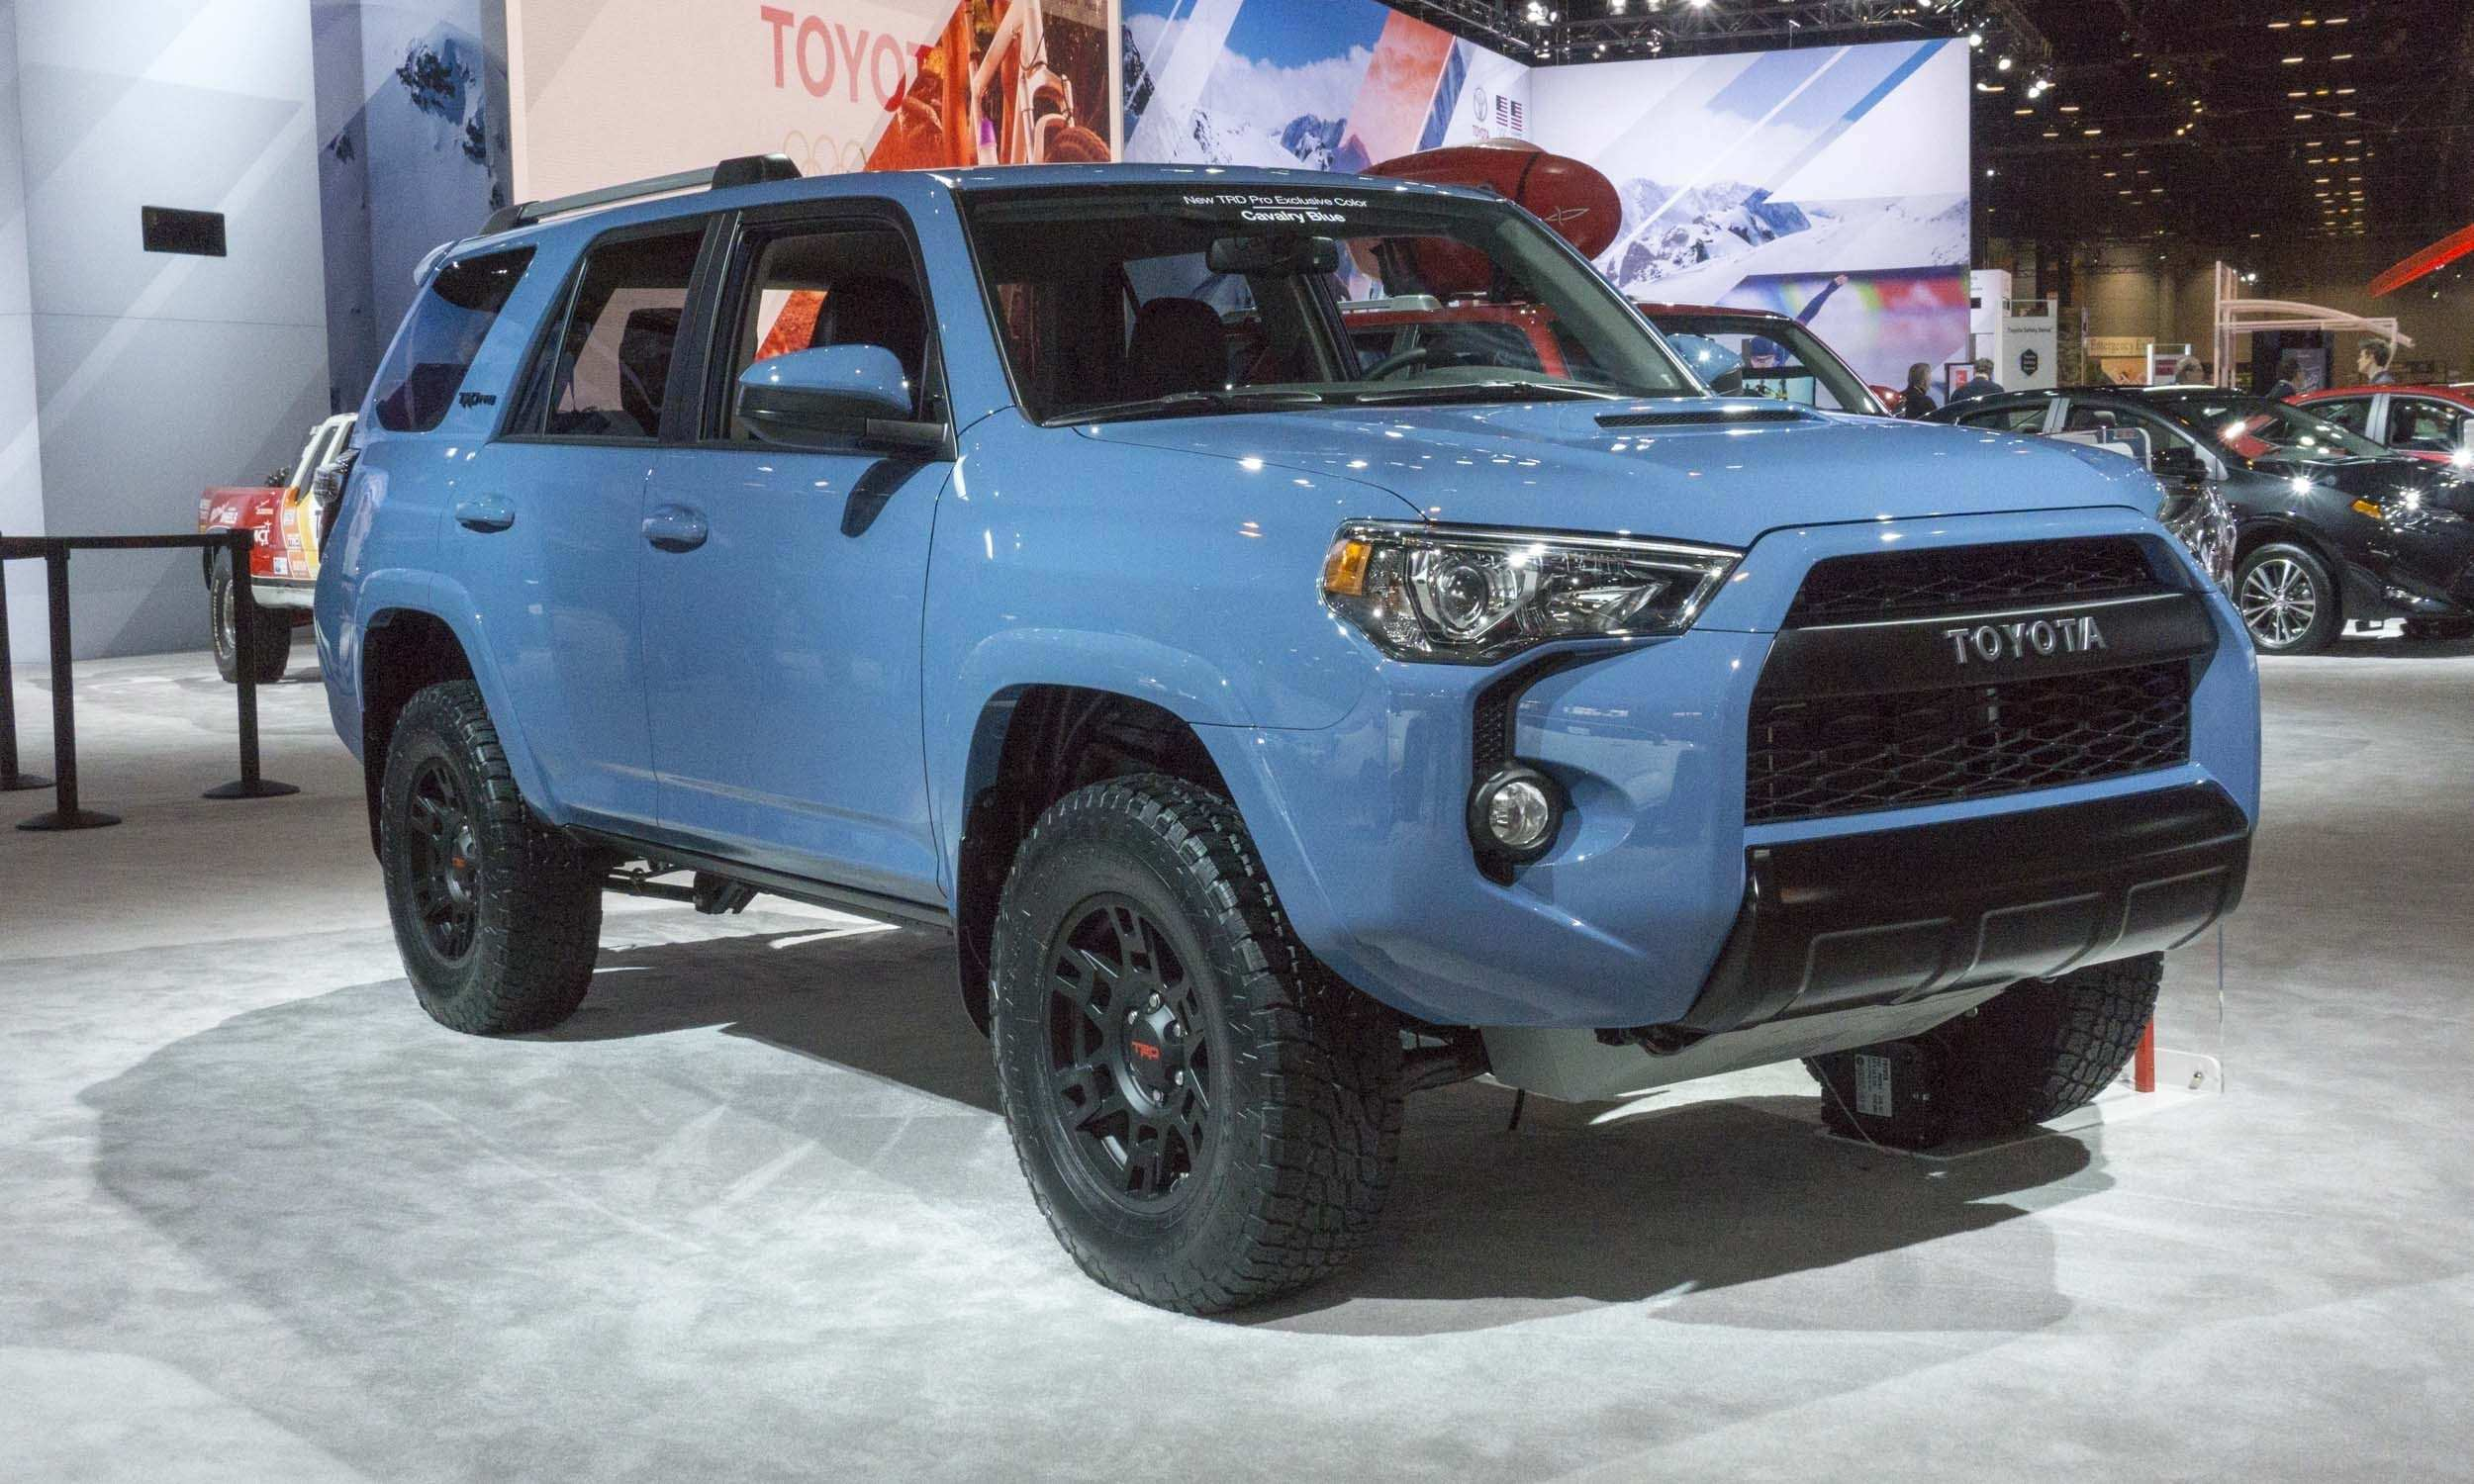 57 Concept of 2020 Toyota Tundra Voodoo Blue Concept with 2020 Toyota Tundra Voodoo Blue